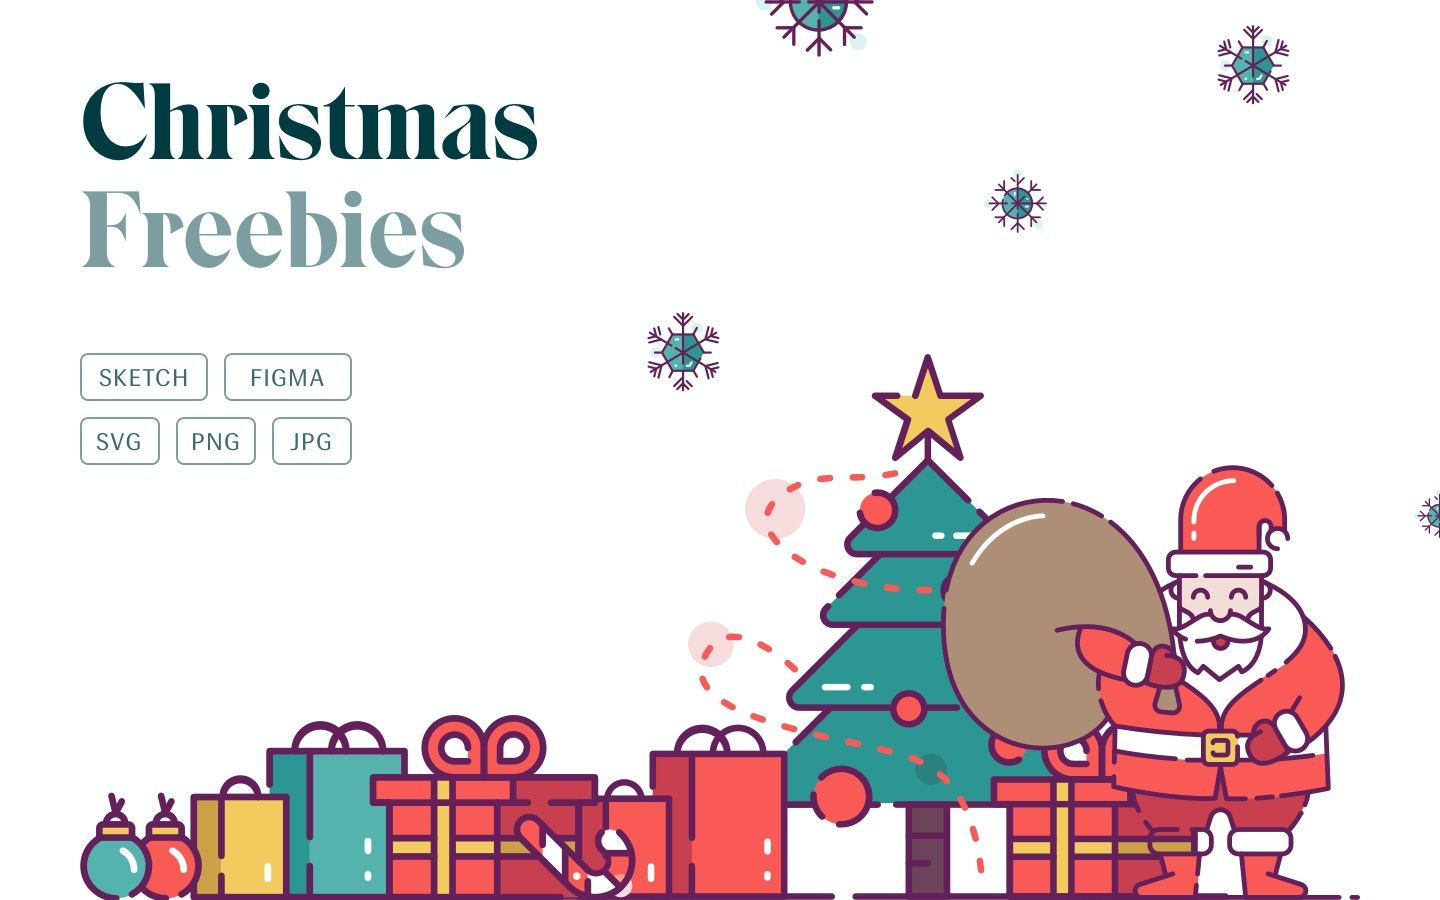 Christmas HQ - Totally free holiday icons, images, borders and fonts